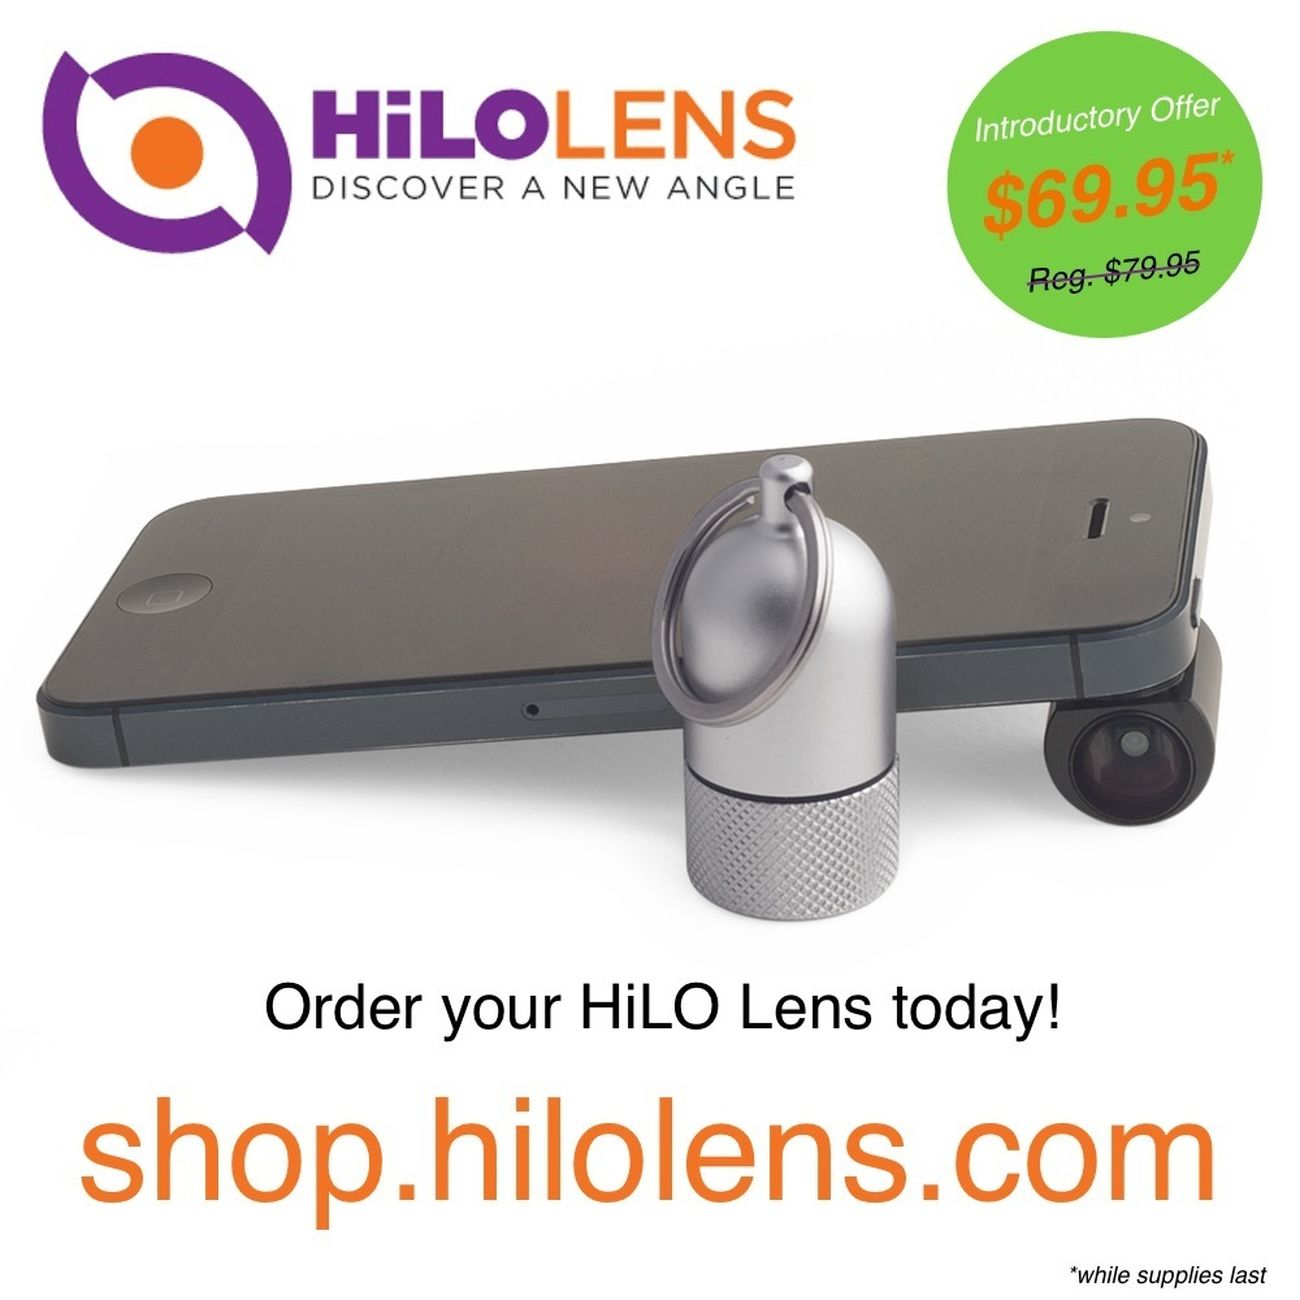 HiLO Lens is now available to purchase! Go to shop.hilolens.com or www.hilolens.com to order yours today! HiLO Lens Architecture Creative Mobilephotography